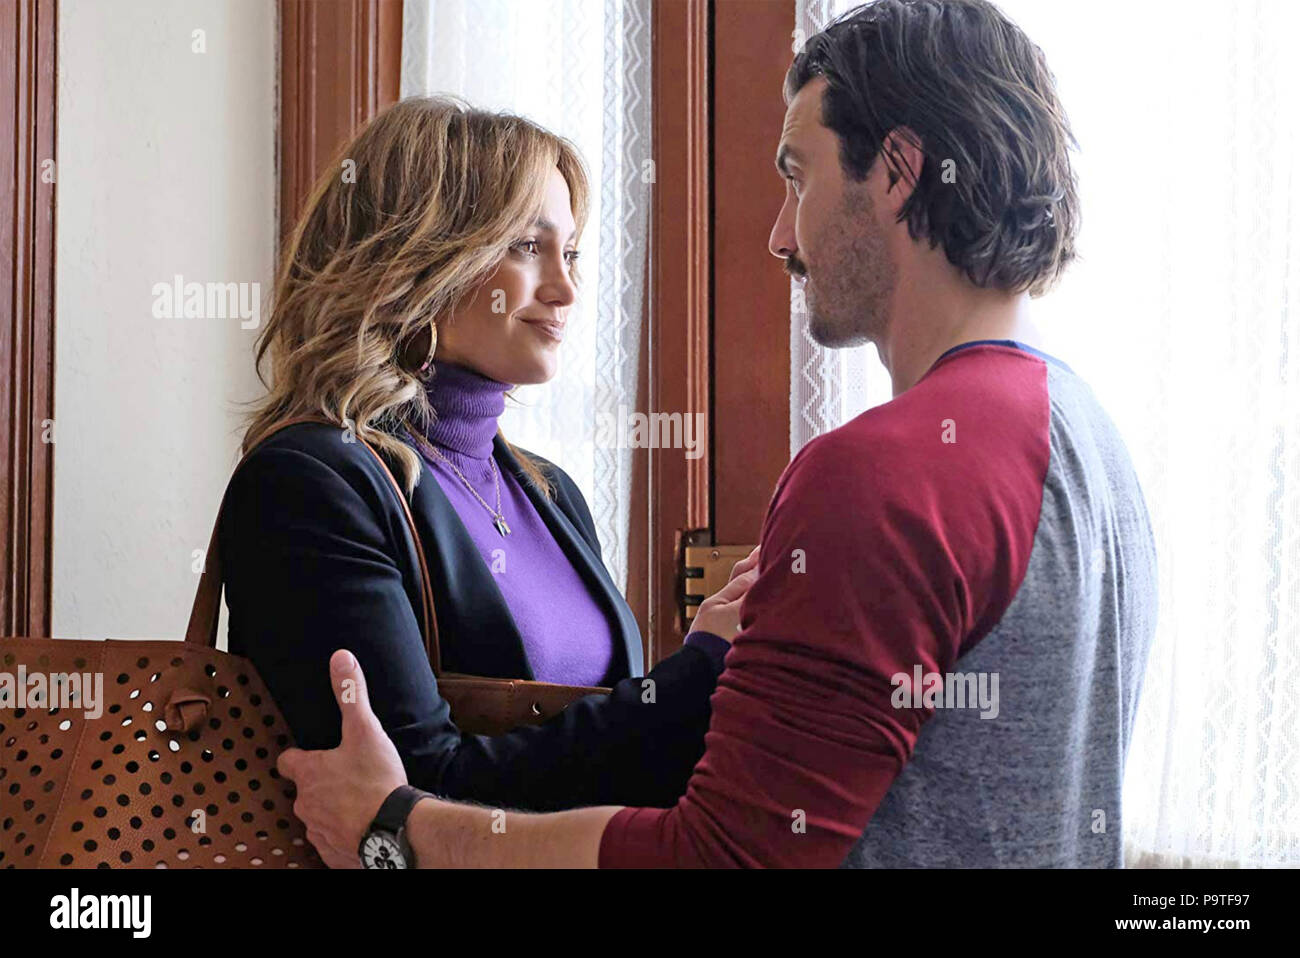 SECOND ACT STX Entertainment film with Jennifer Lopez and Milo Ventimiglia - Stock Image